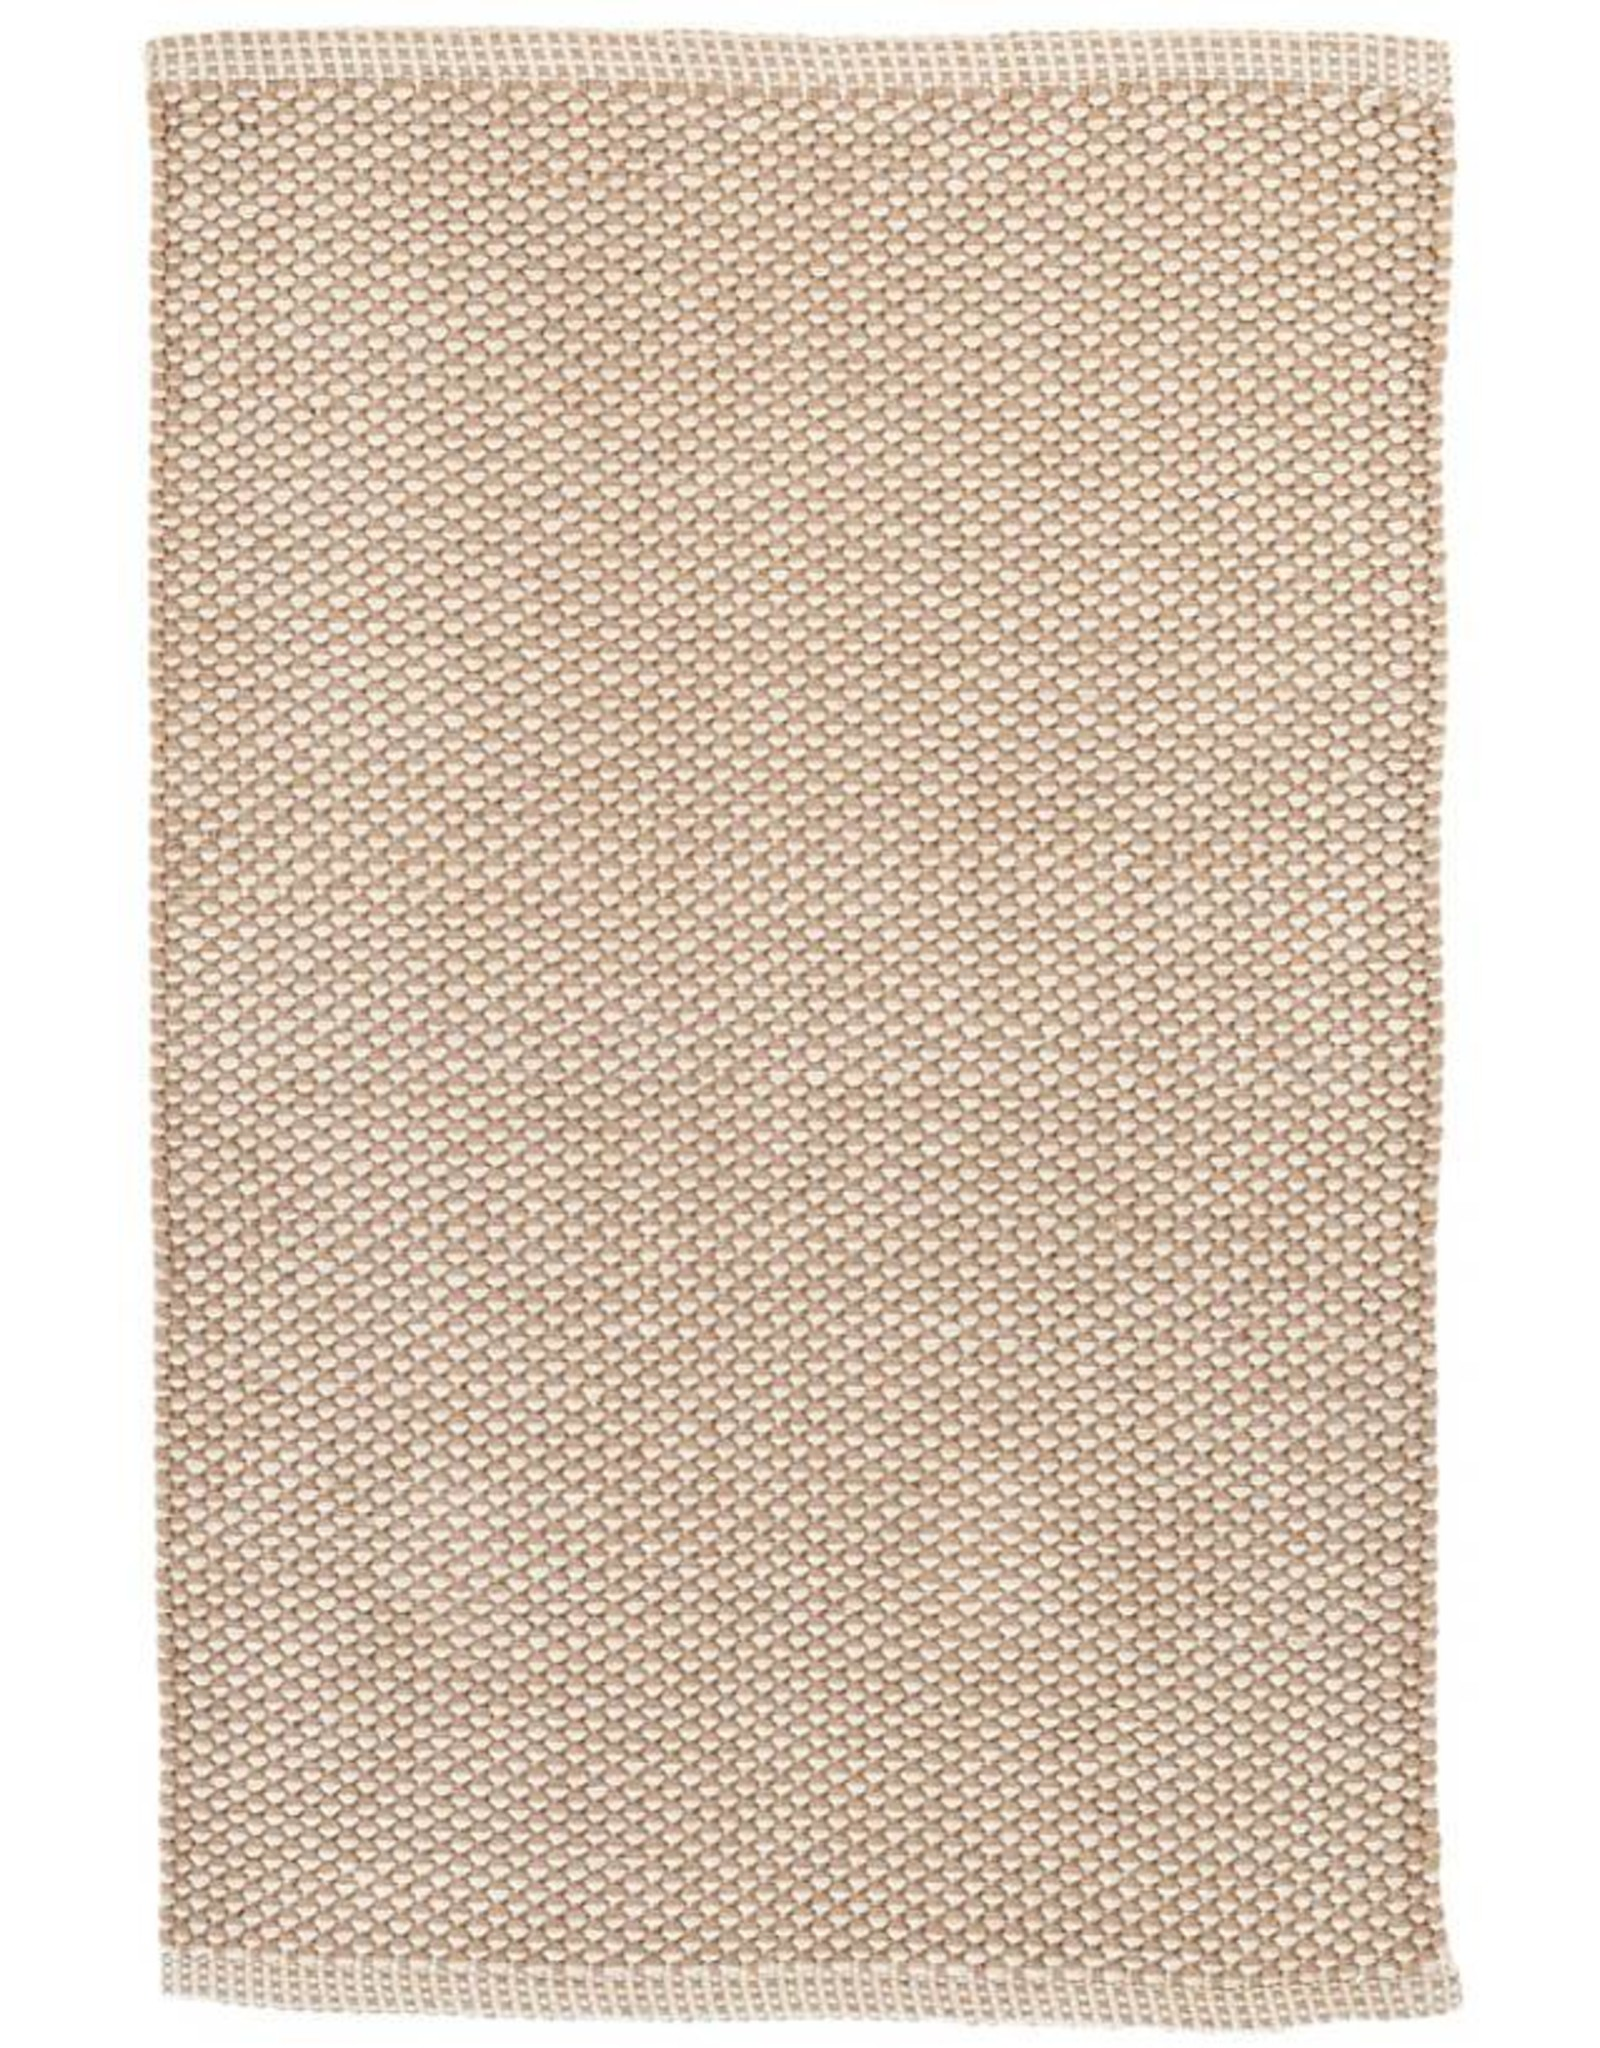 Dash and Albert Pebble Indoor/Outdoor Rug 2.5x8